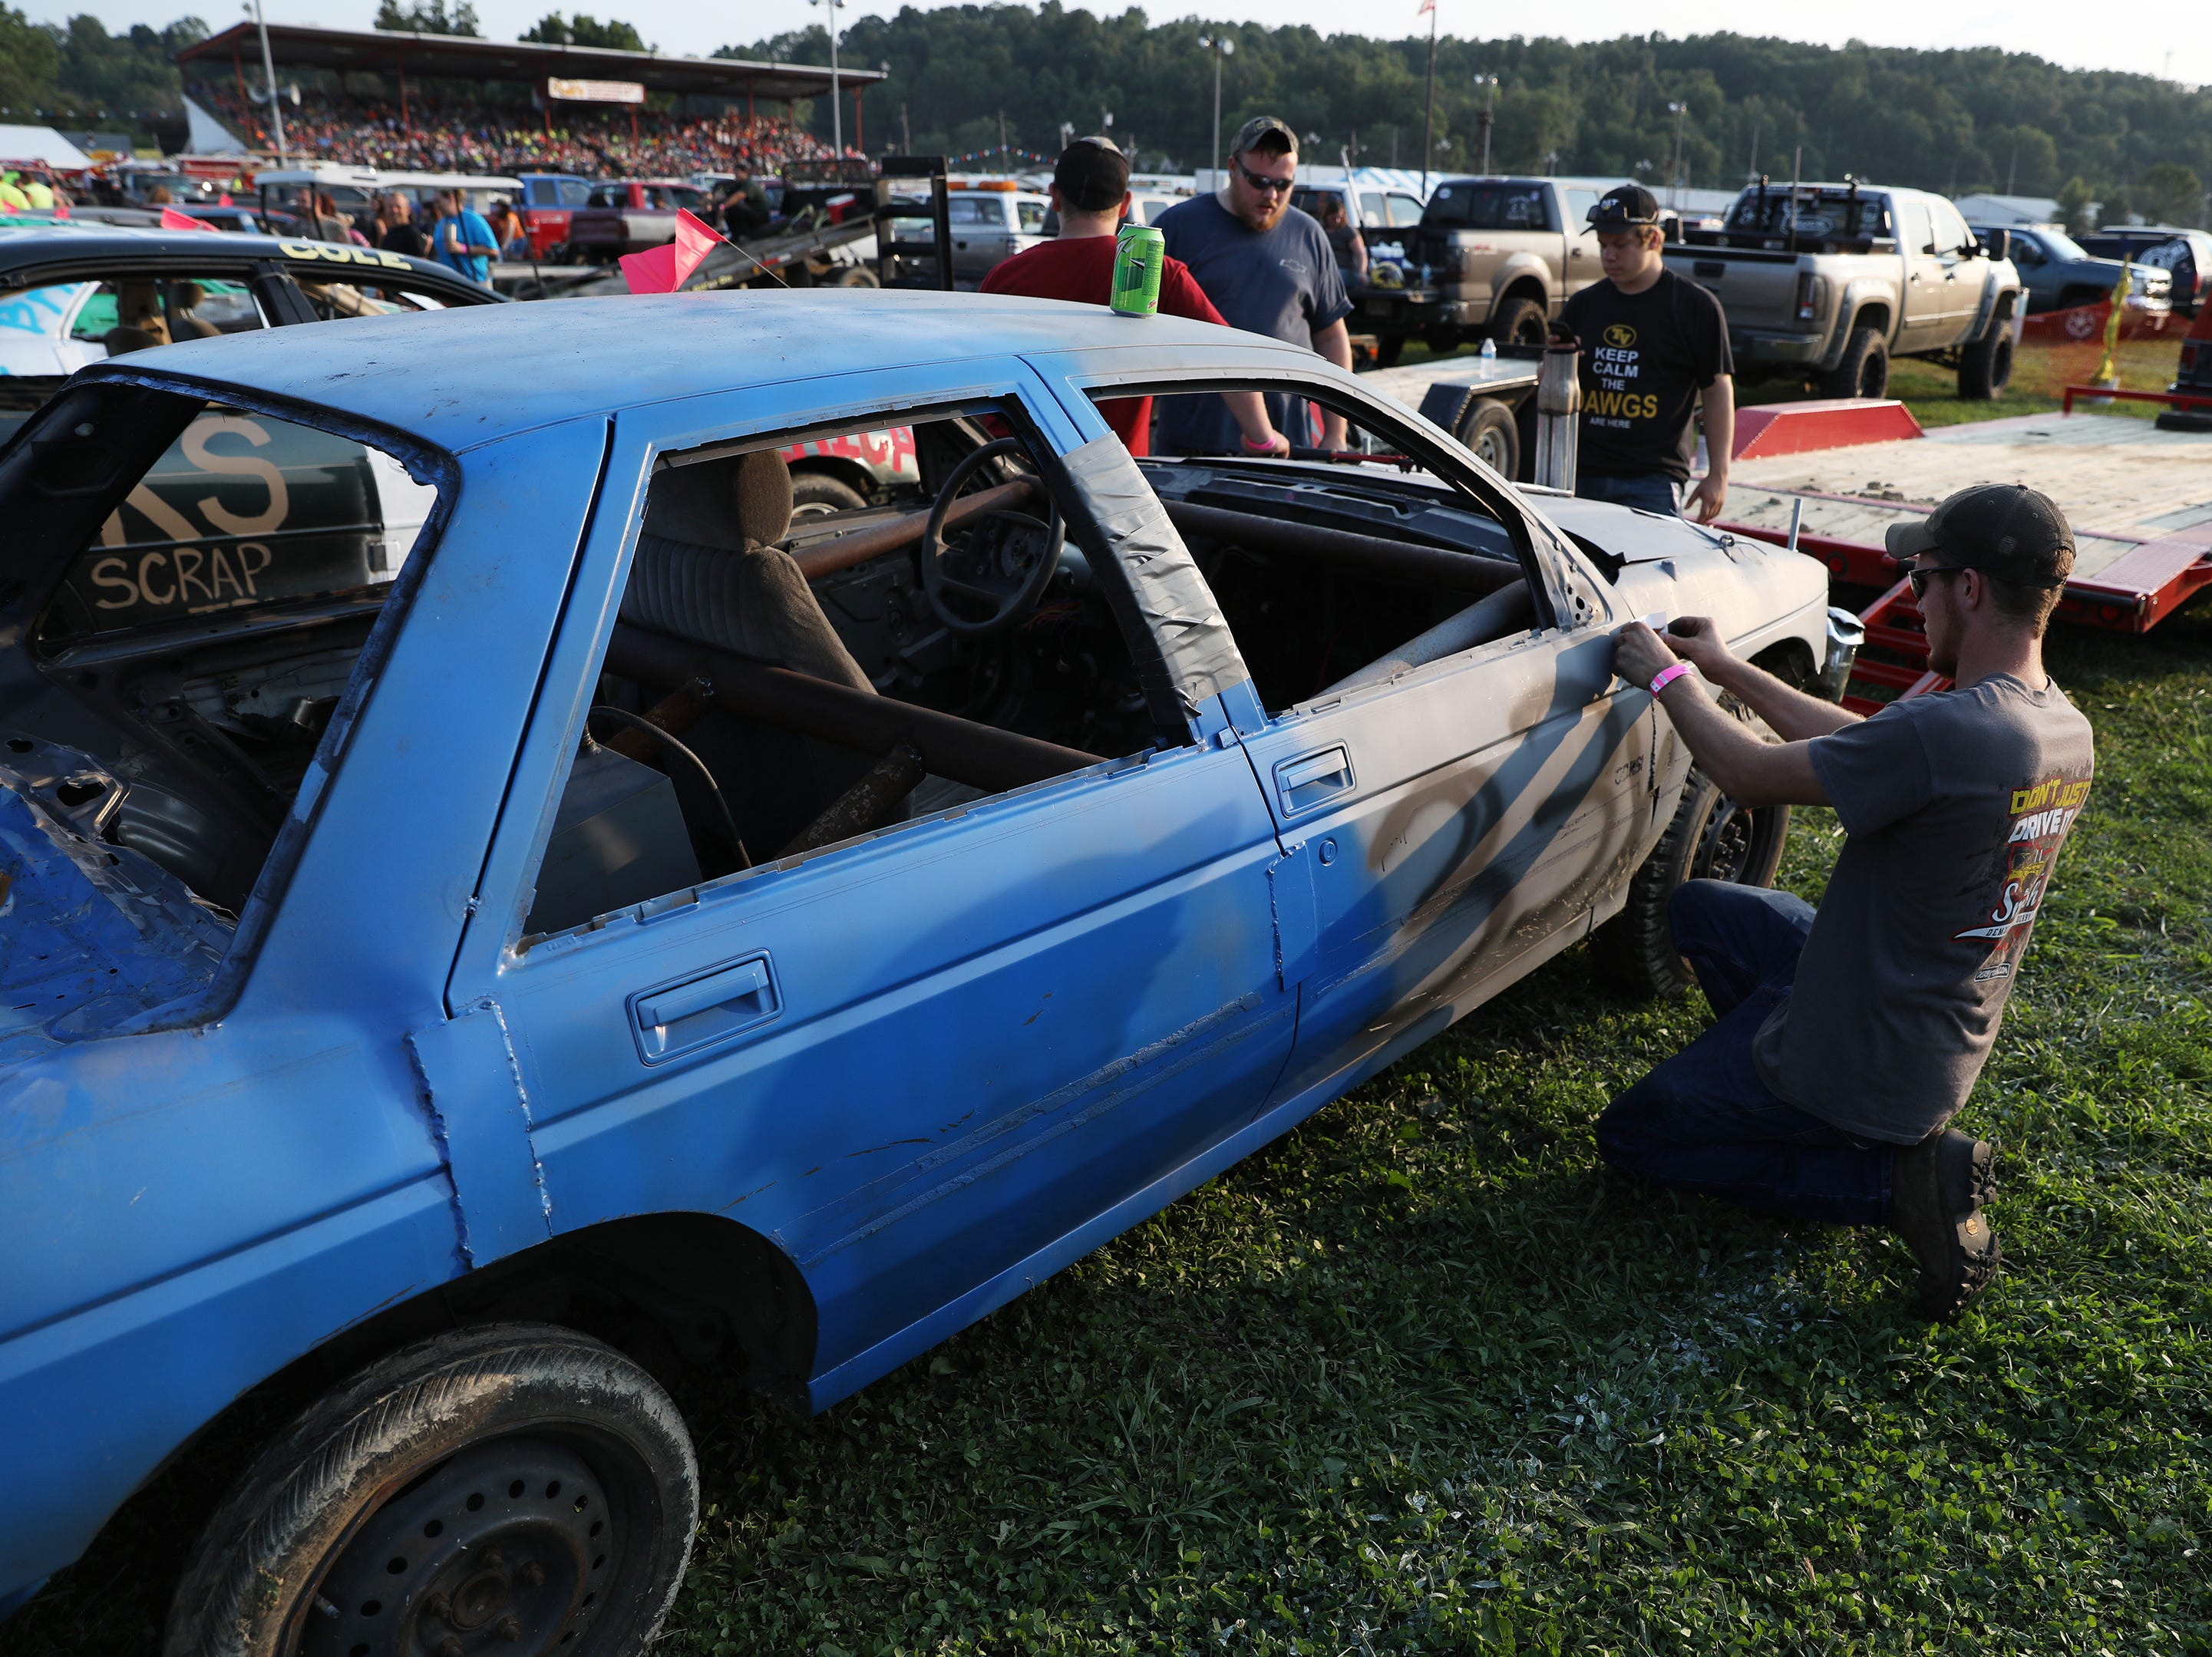 Scott Cordle puts a sticker on his before the Sarge and Sons Demolition Derby at the Muskingum County Fair on Tuesday.